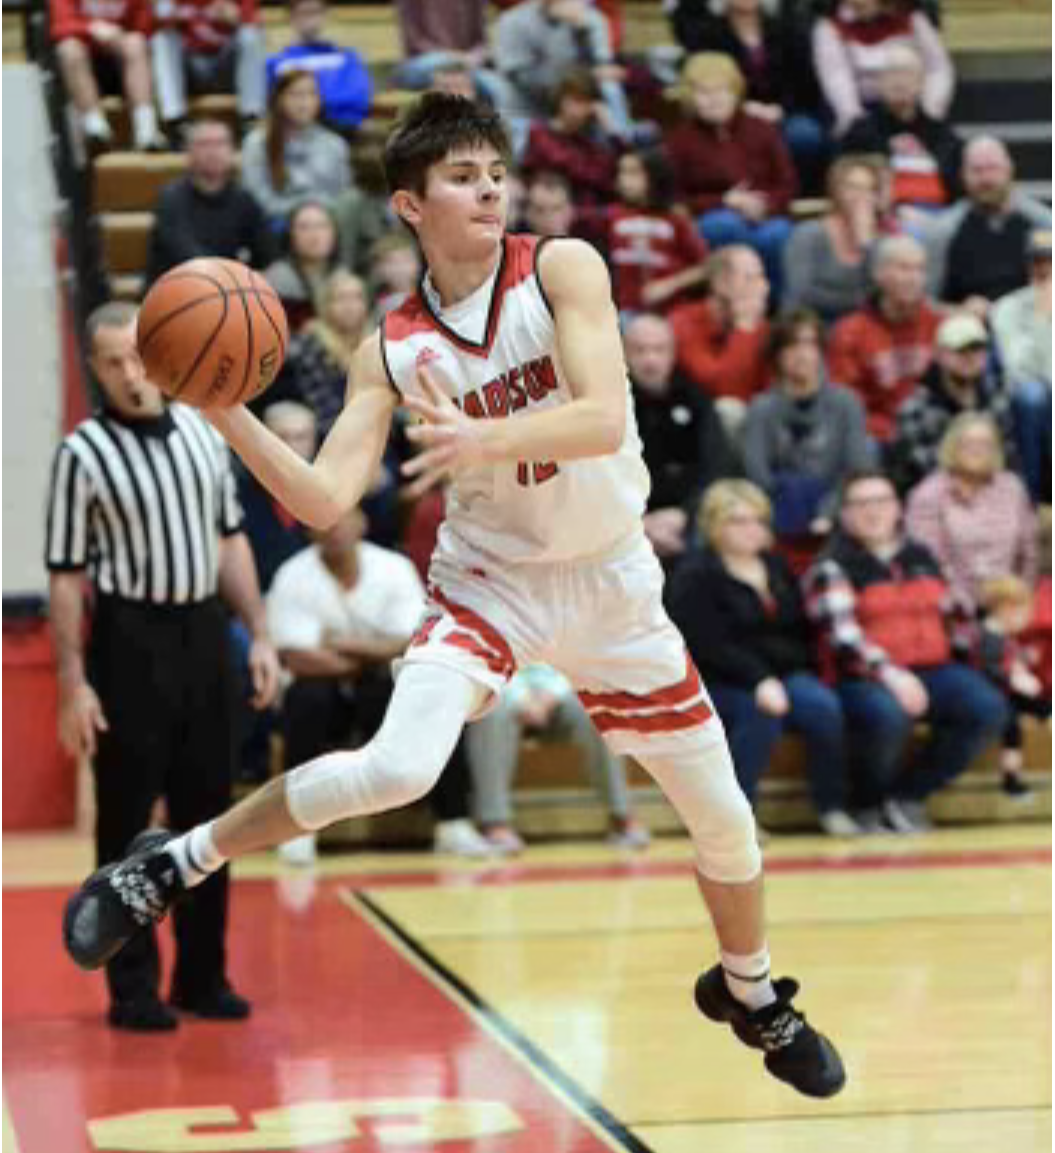 MCHS senior basketball player Luke Miller saves the ball from going out of bounds.